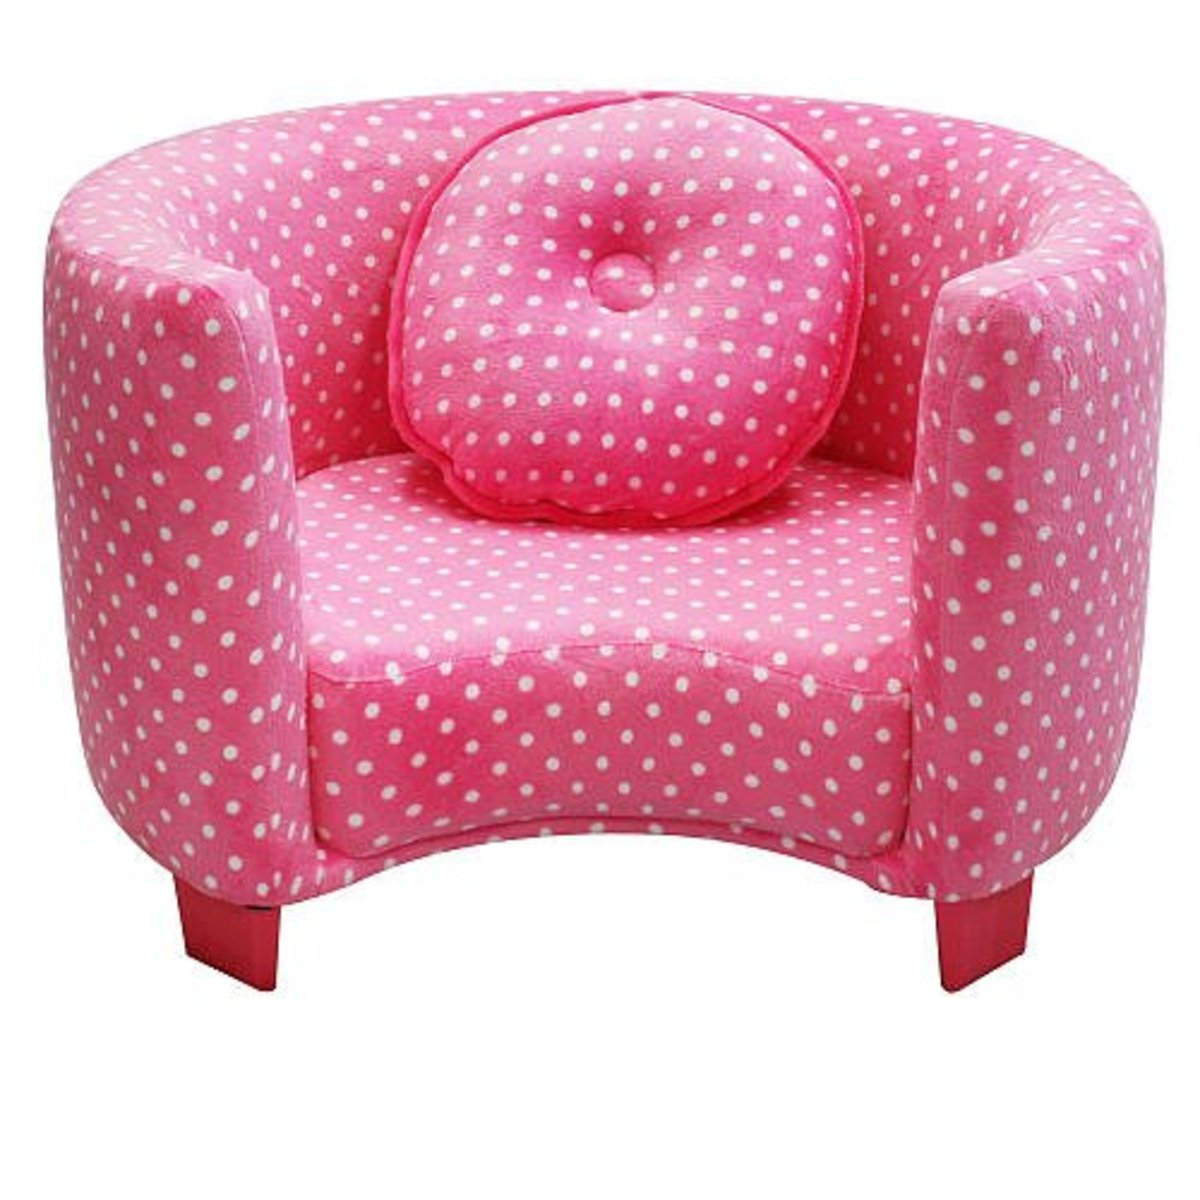 Kids' Round Upholstered Pink Polka Dot Chair for Little Girls